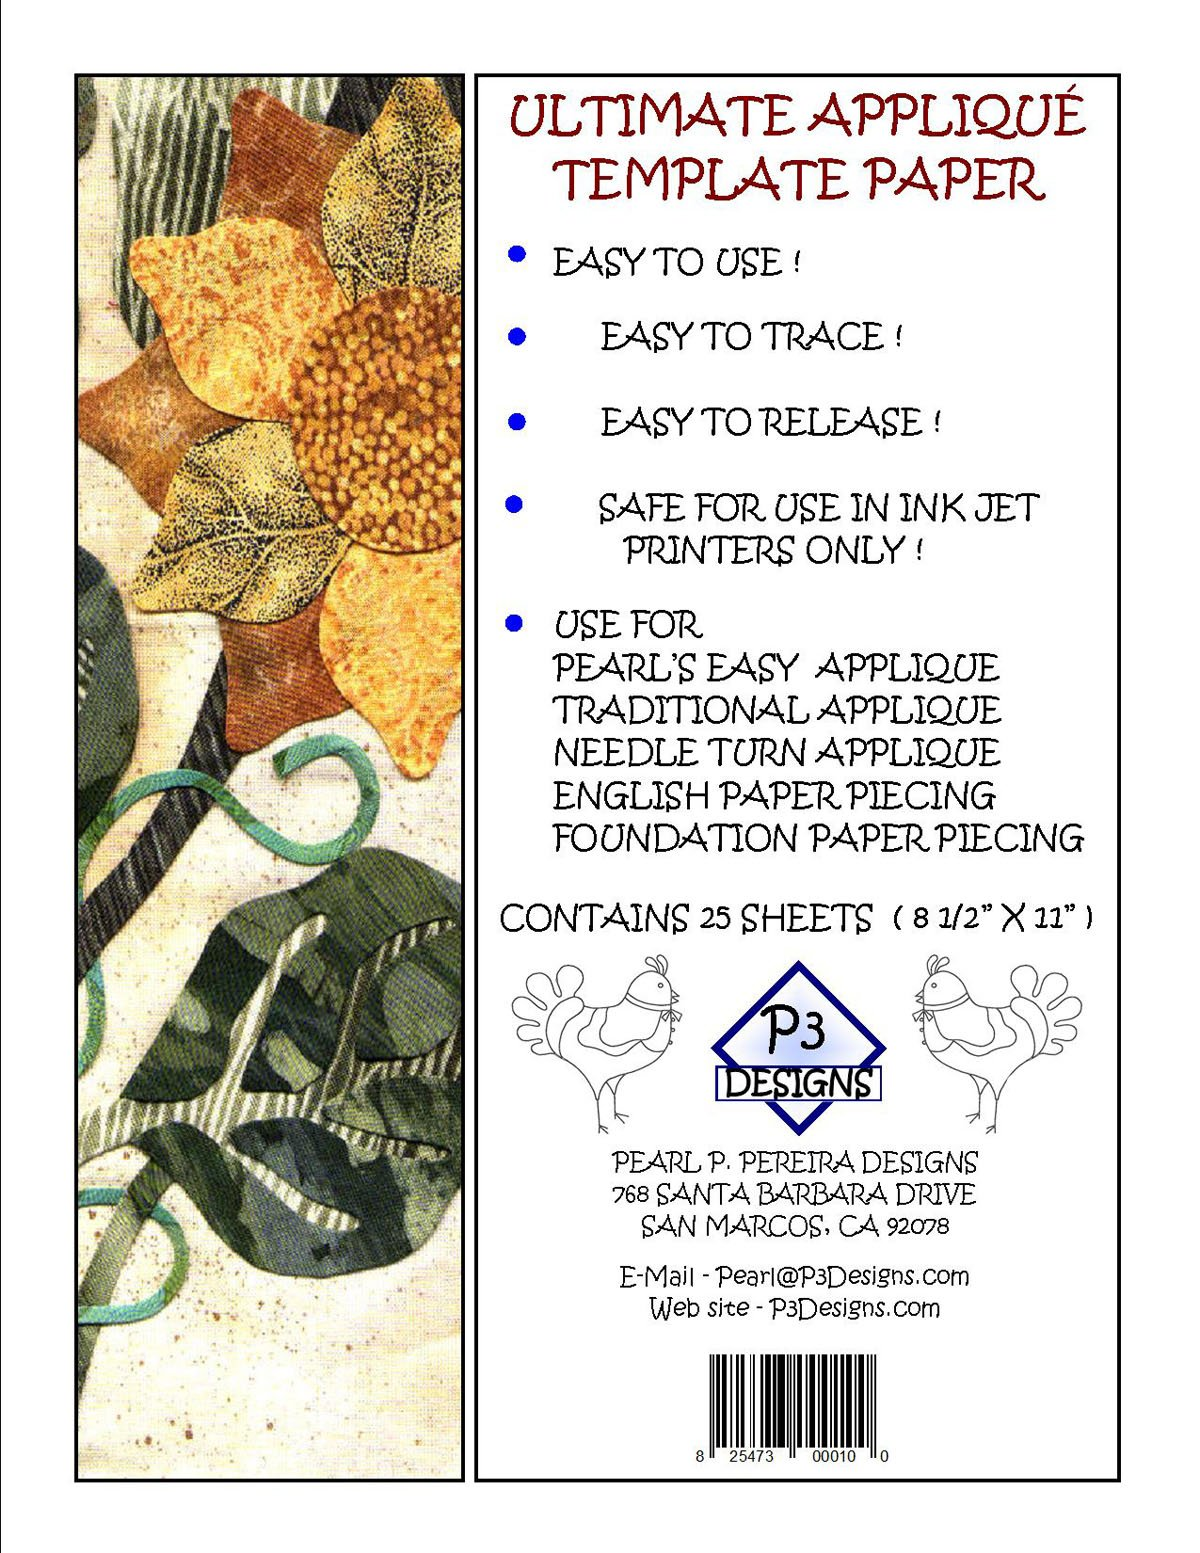 99003 Ultimate Applique Template Paper